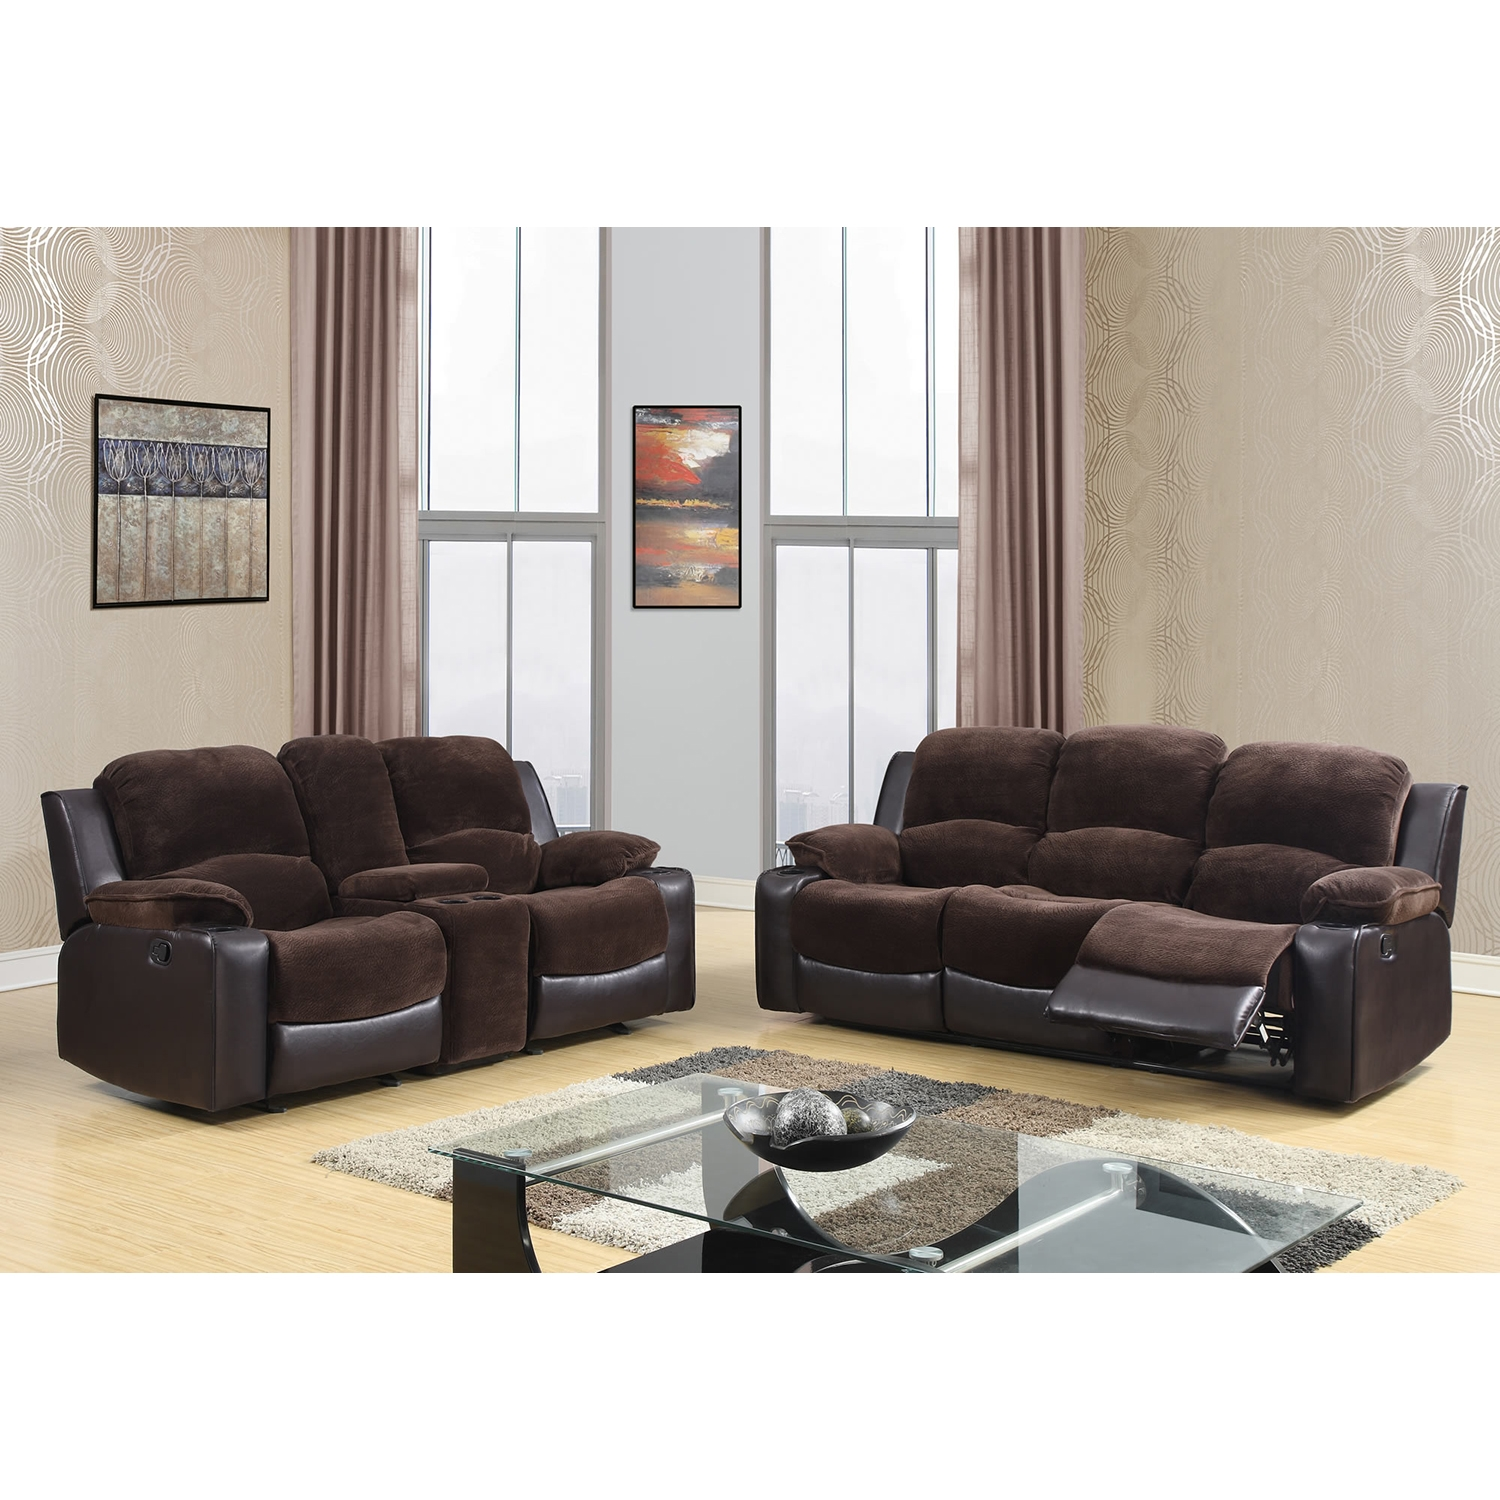 Cassidy Console Reclining Loveseat, Chocolate/Brown - GLO-U1301-CHMP-CHOC-C-R-L-M